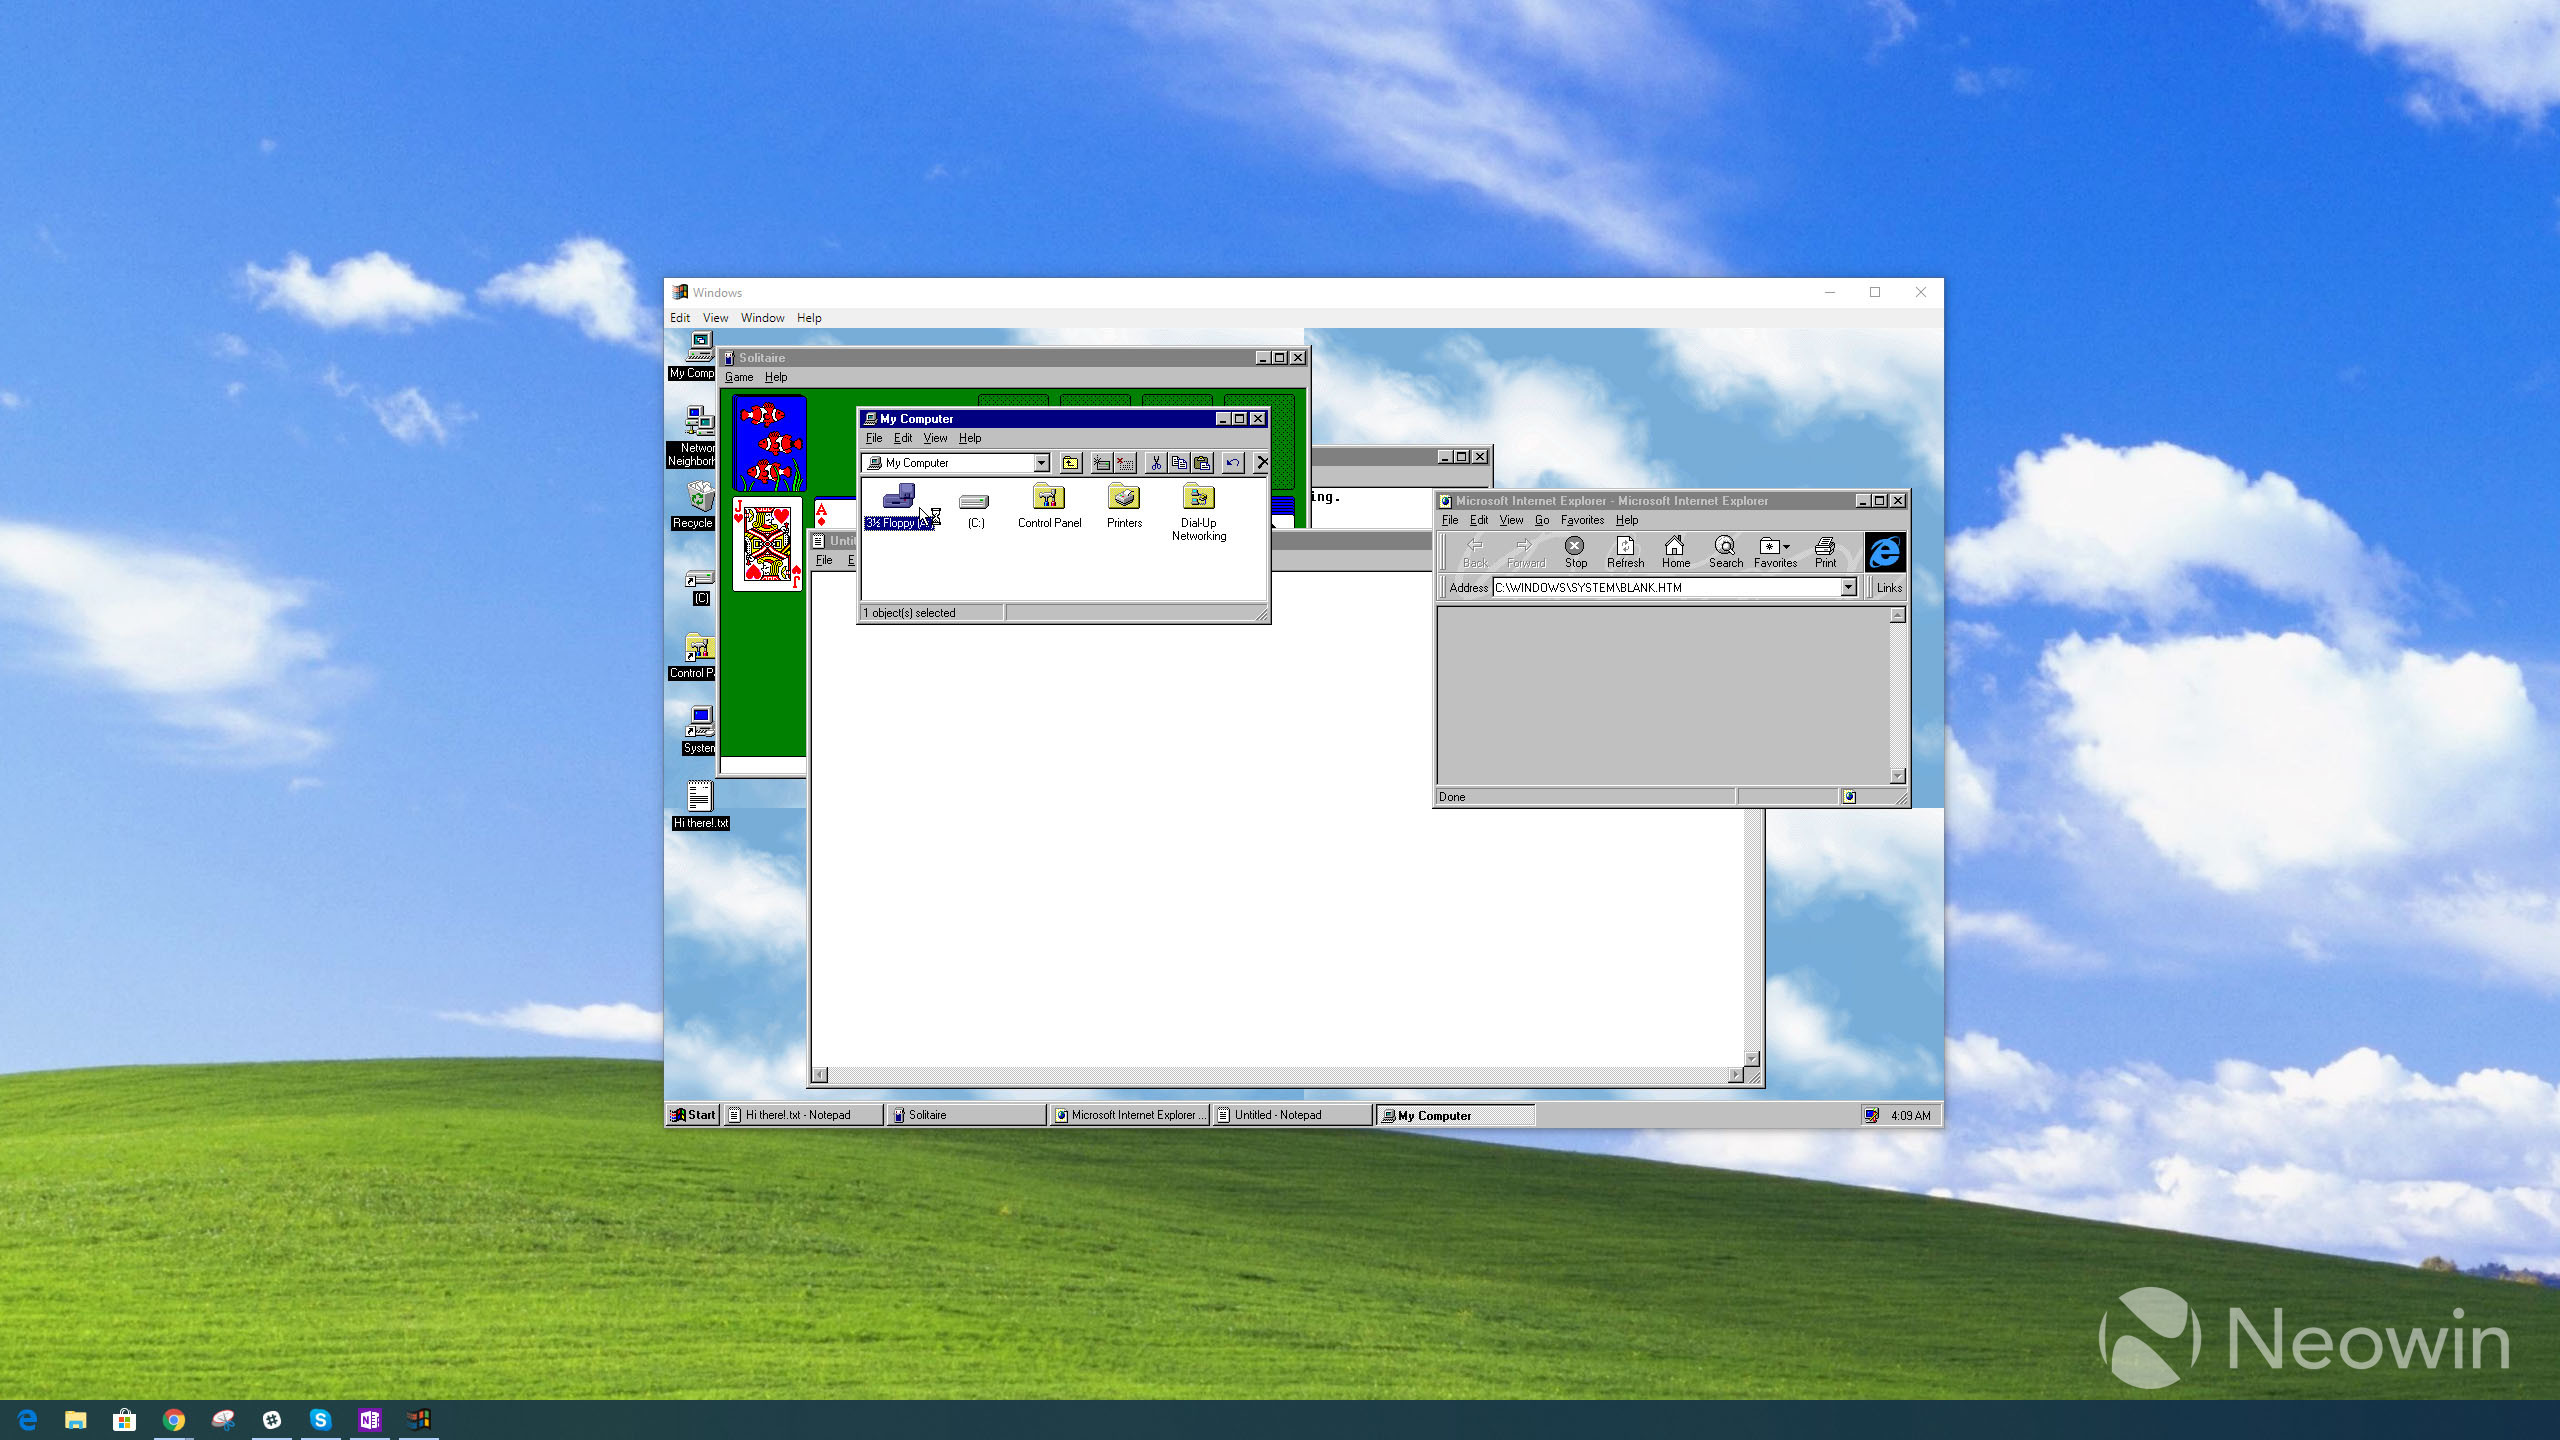 You can relive your youth with Windows 95, which now comes as an